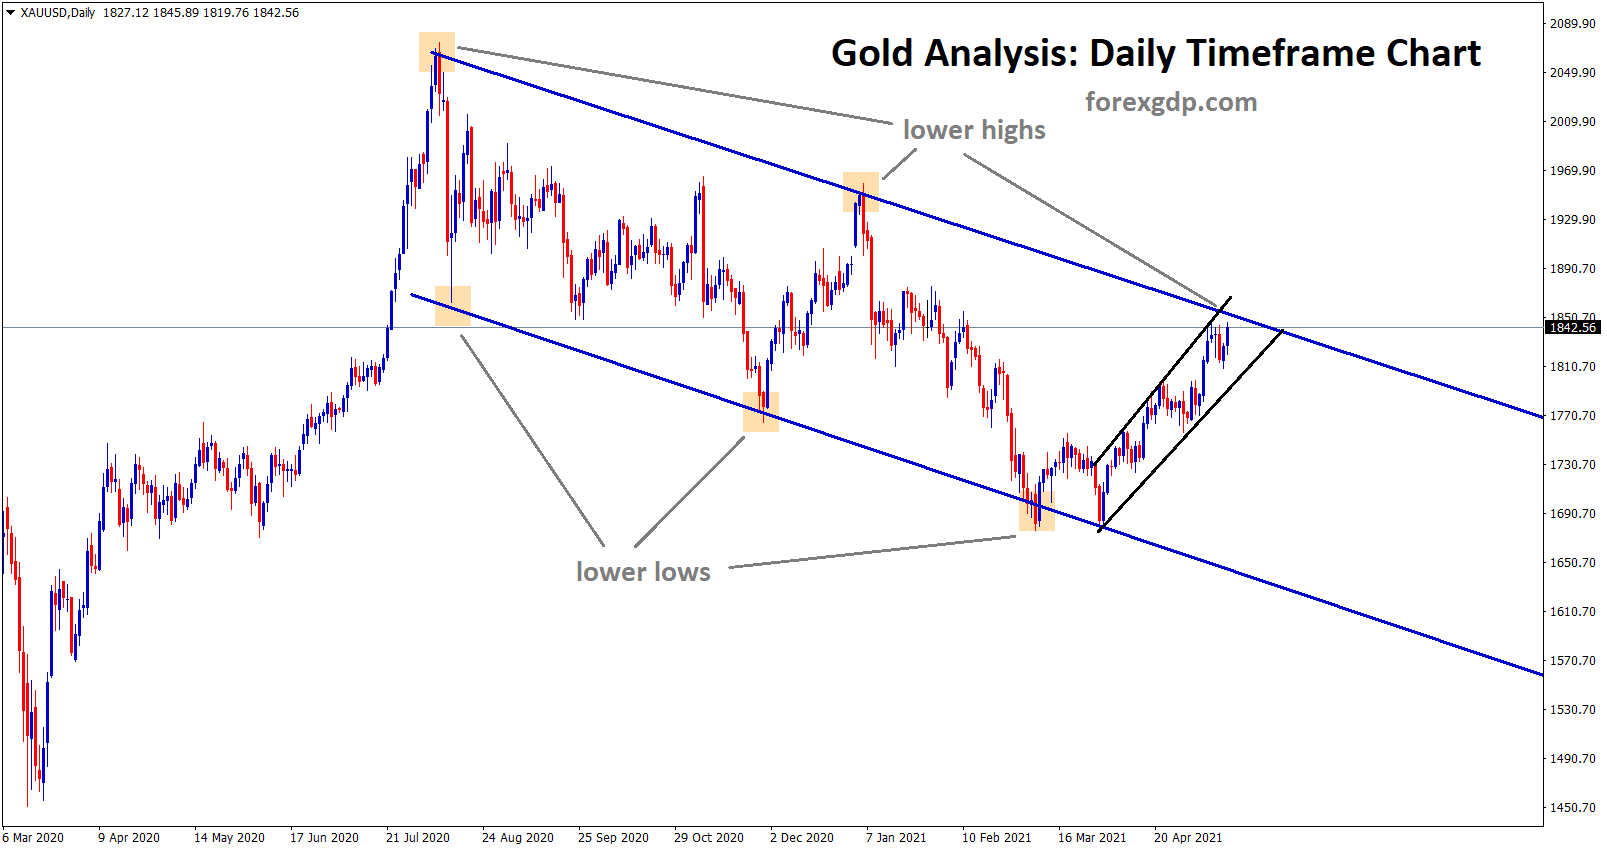 Gold price going to reach the lower high of the descending channel